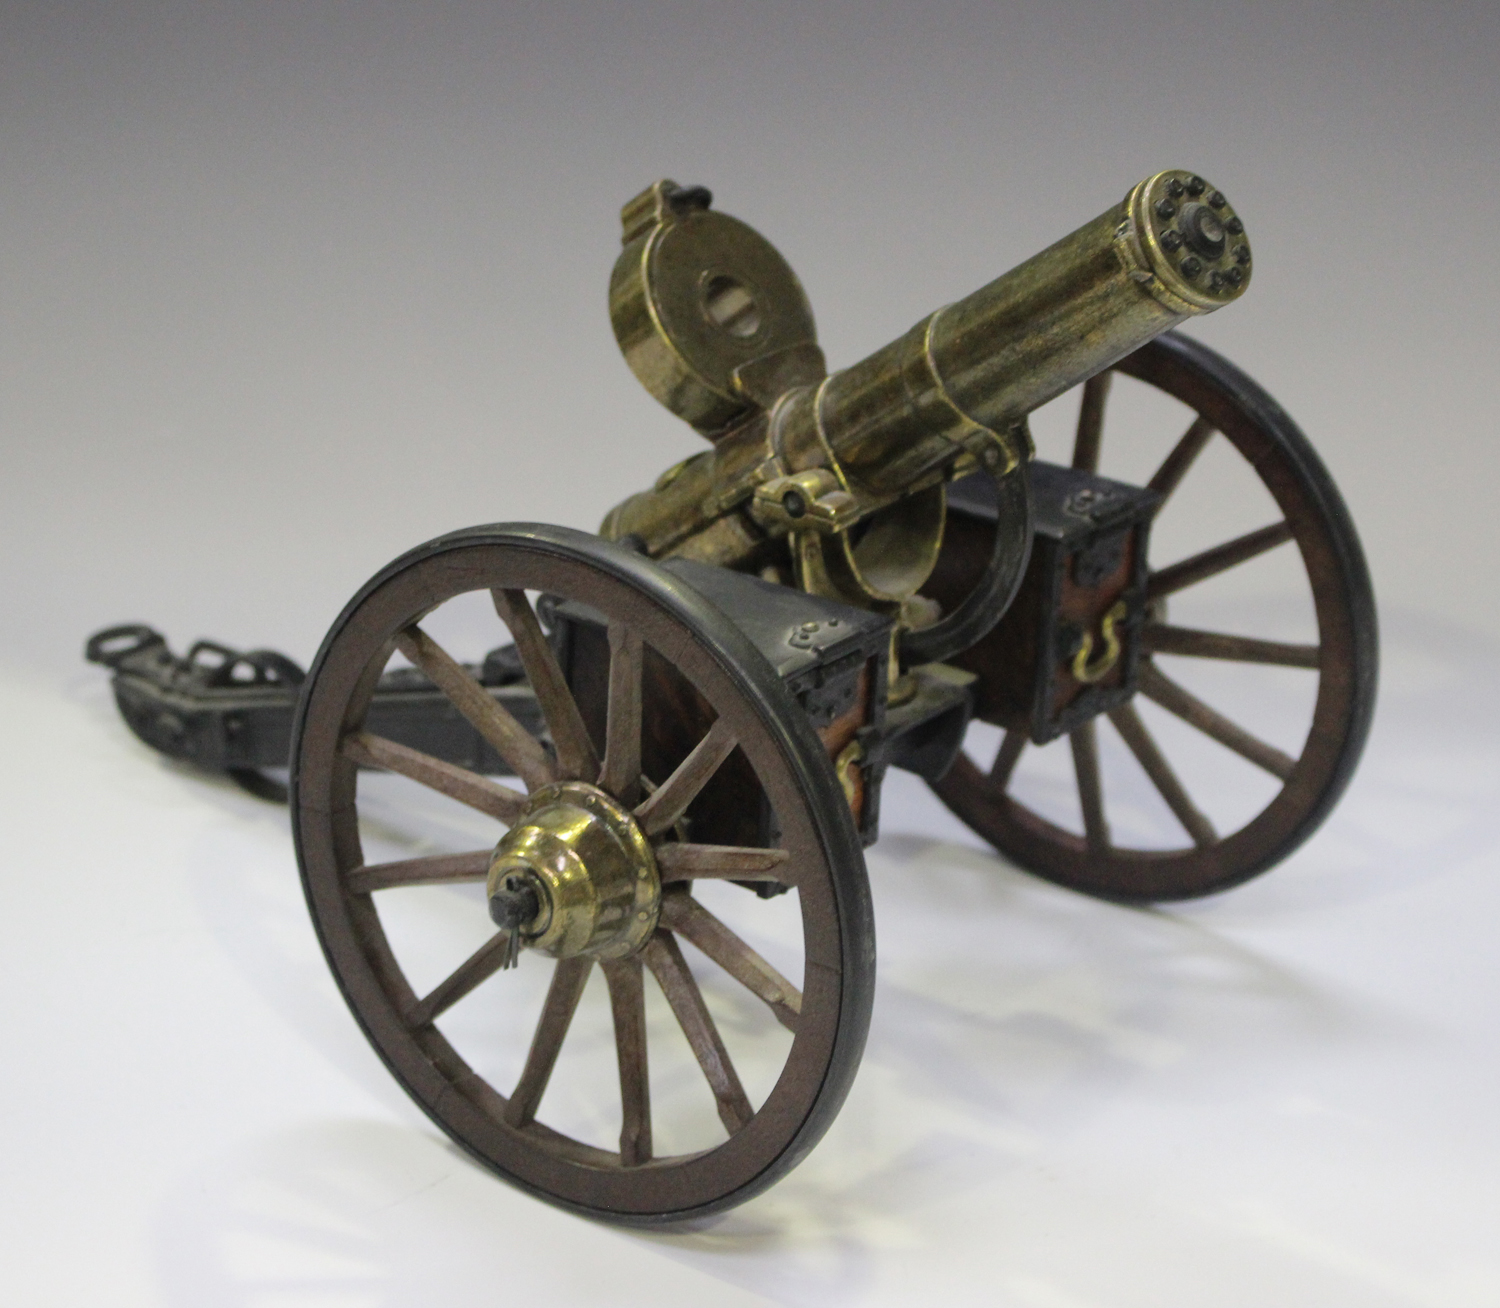 A late 20th century cast metal and wooden desk model of Gatling gun, mounted on a wheeled